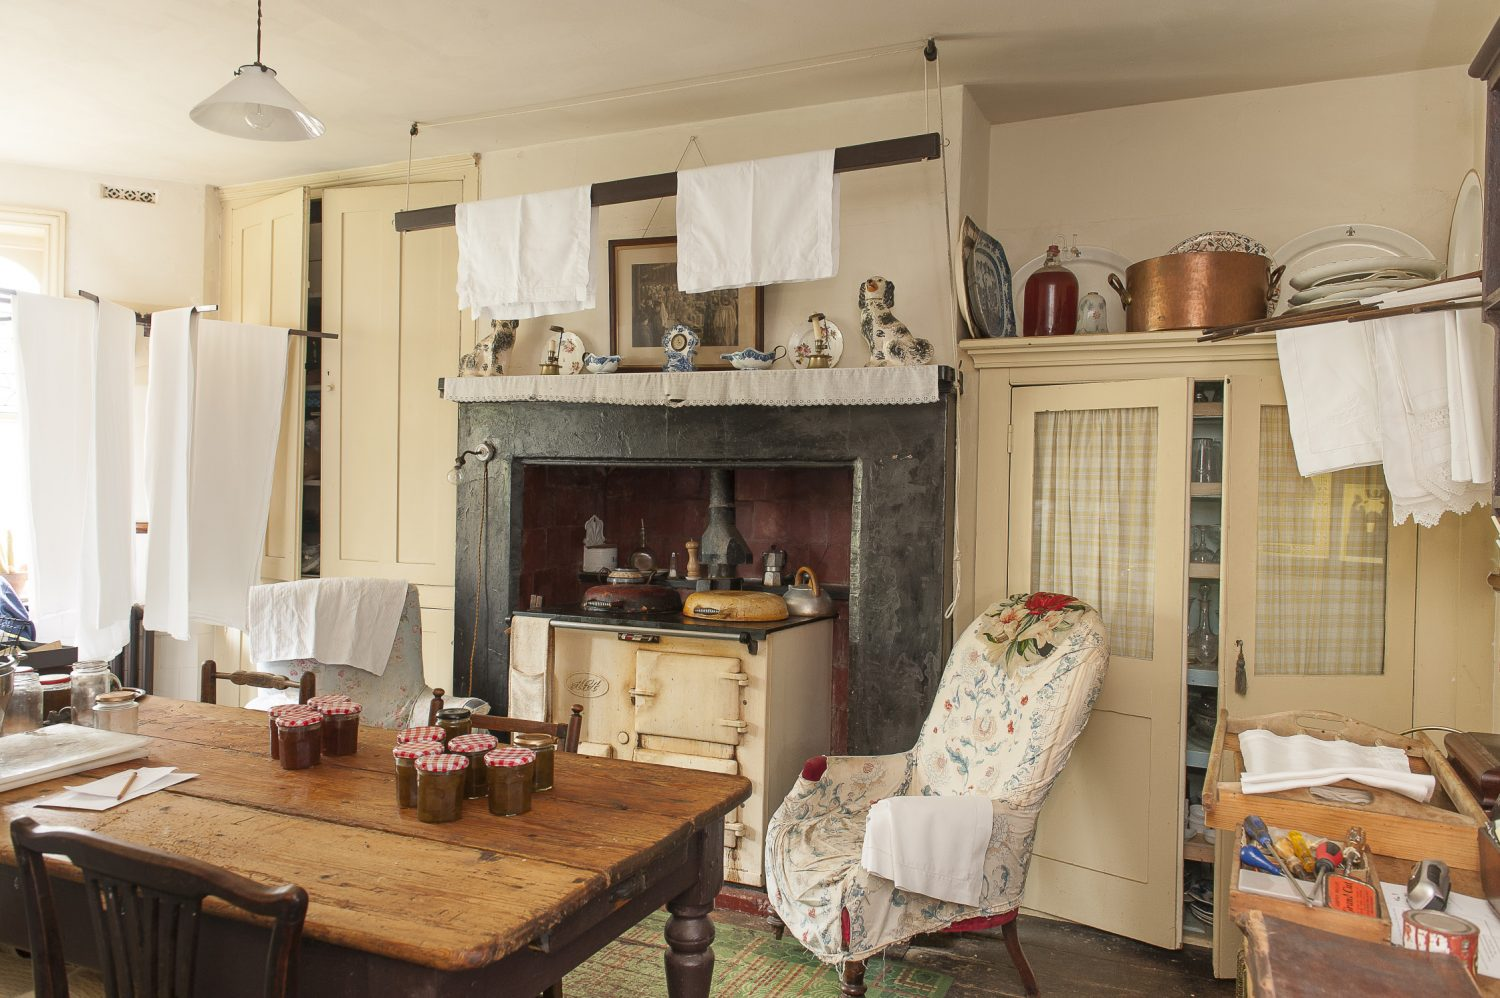 In the large kitchen, ironed cotton sheets hang on wooden hoist and spindle airers